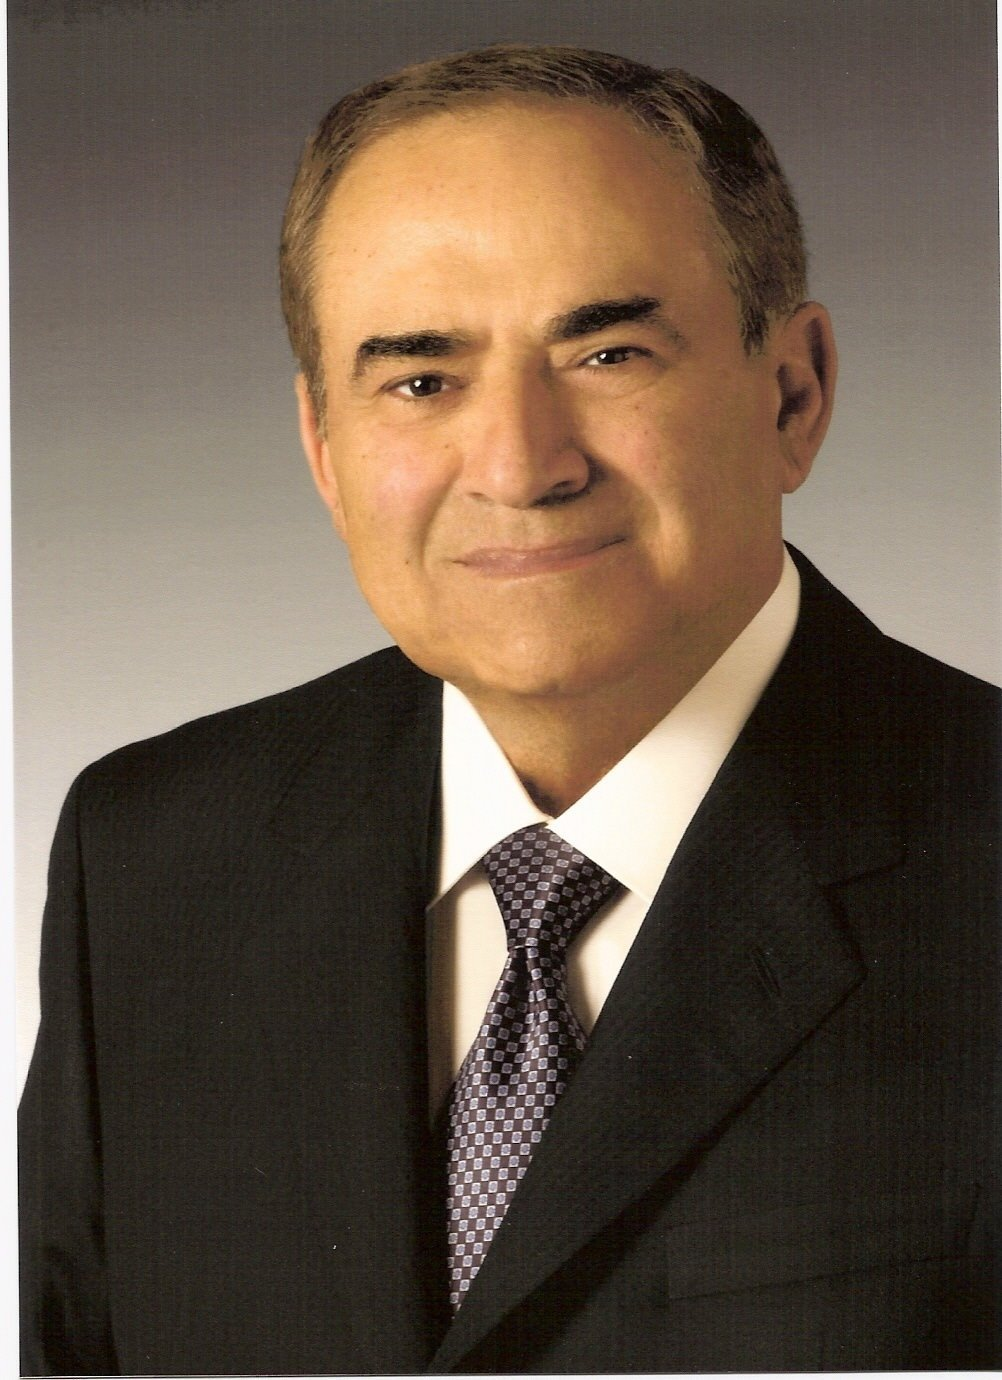 ray irani Ray irani ceo of occidental petroleum(oxy) ray irani was born in lebanon he comes from a palestinian background he went to the american university of beirut and received bachelor of science in chemistry in 1953.